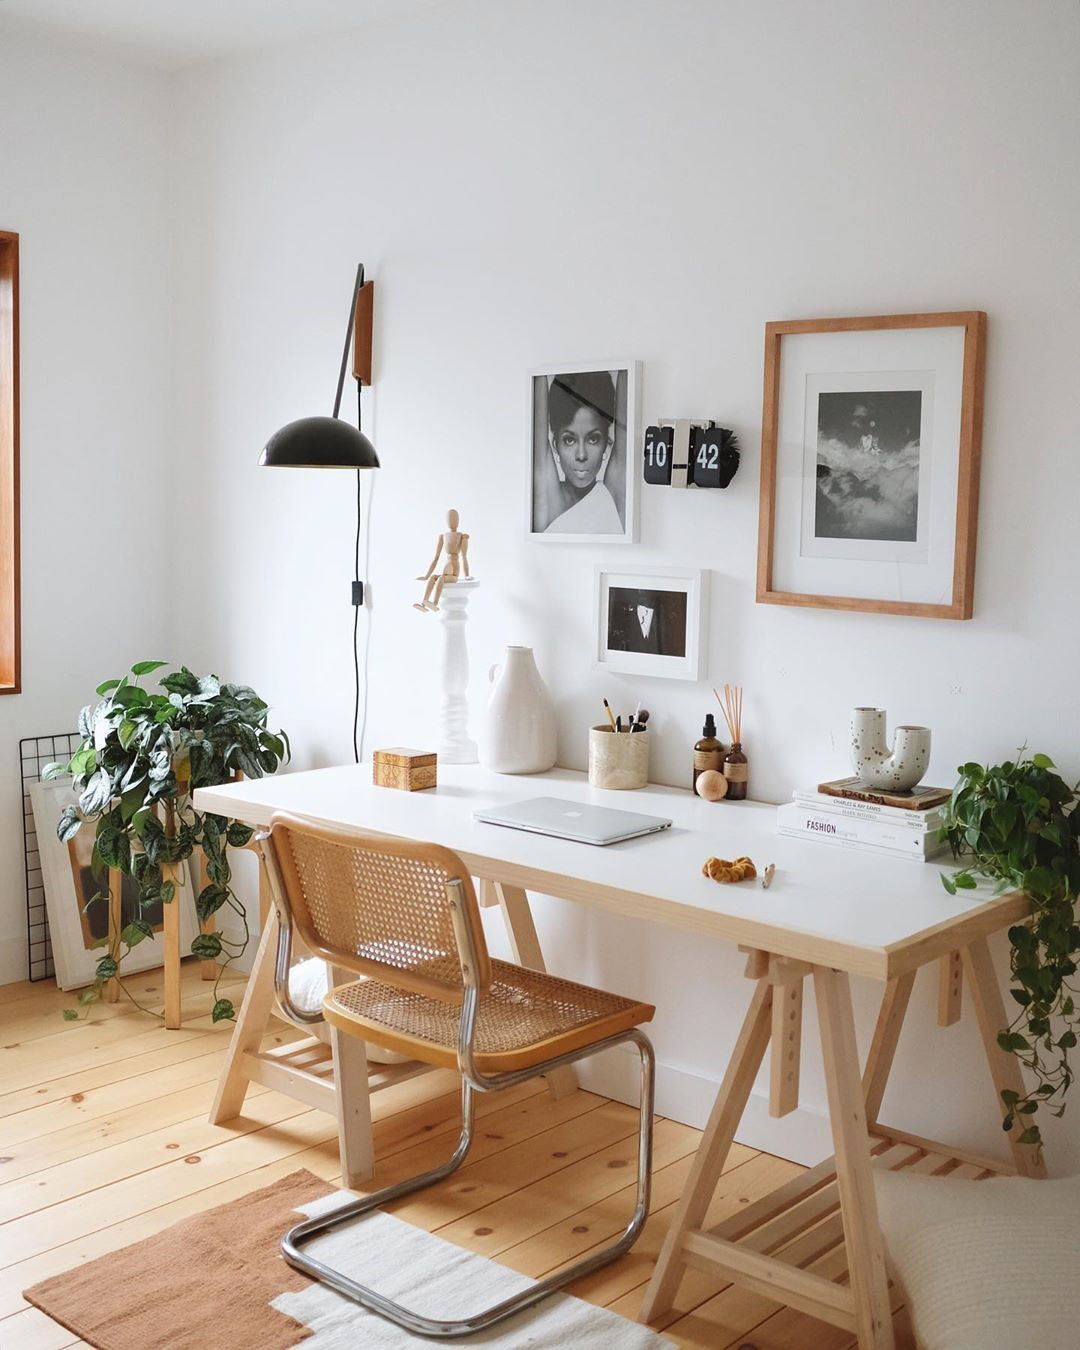 2021 Home Office Trends According To Designers